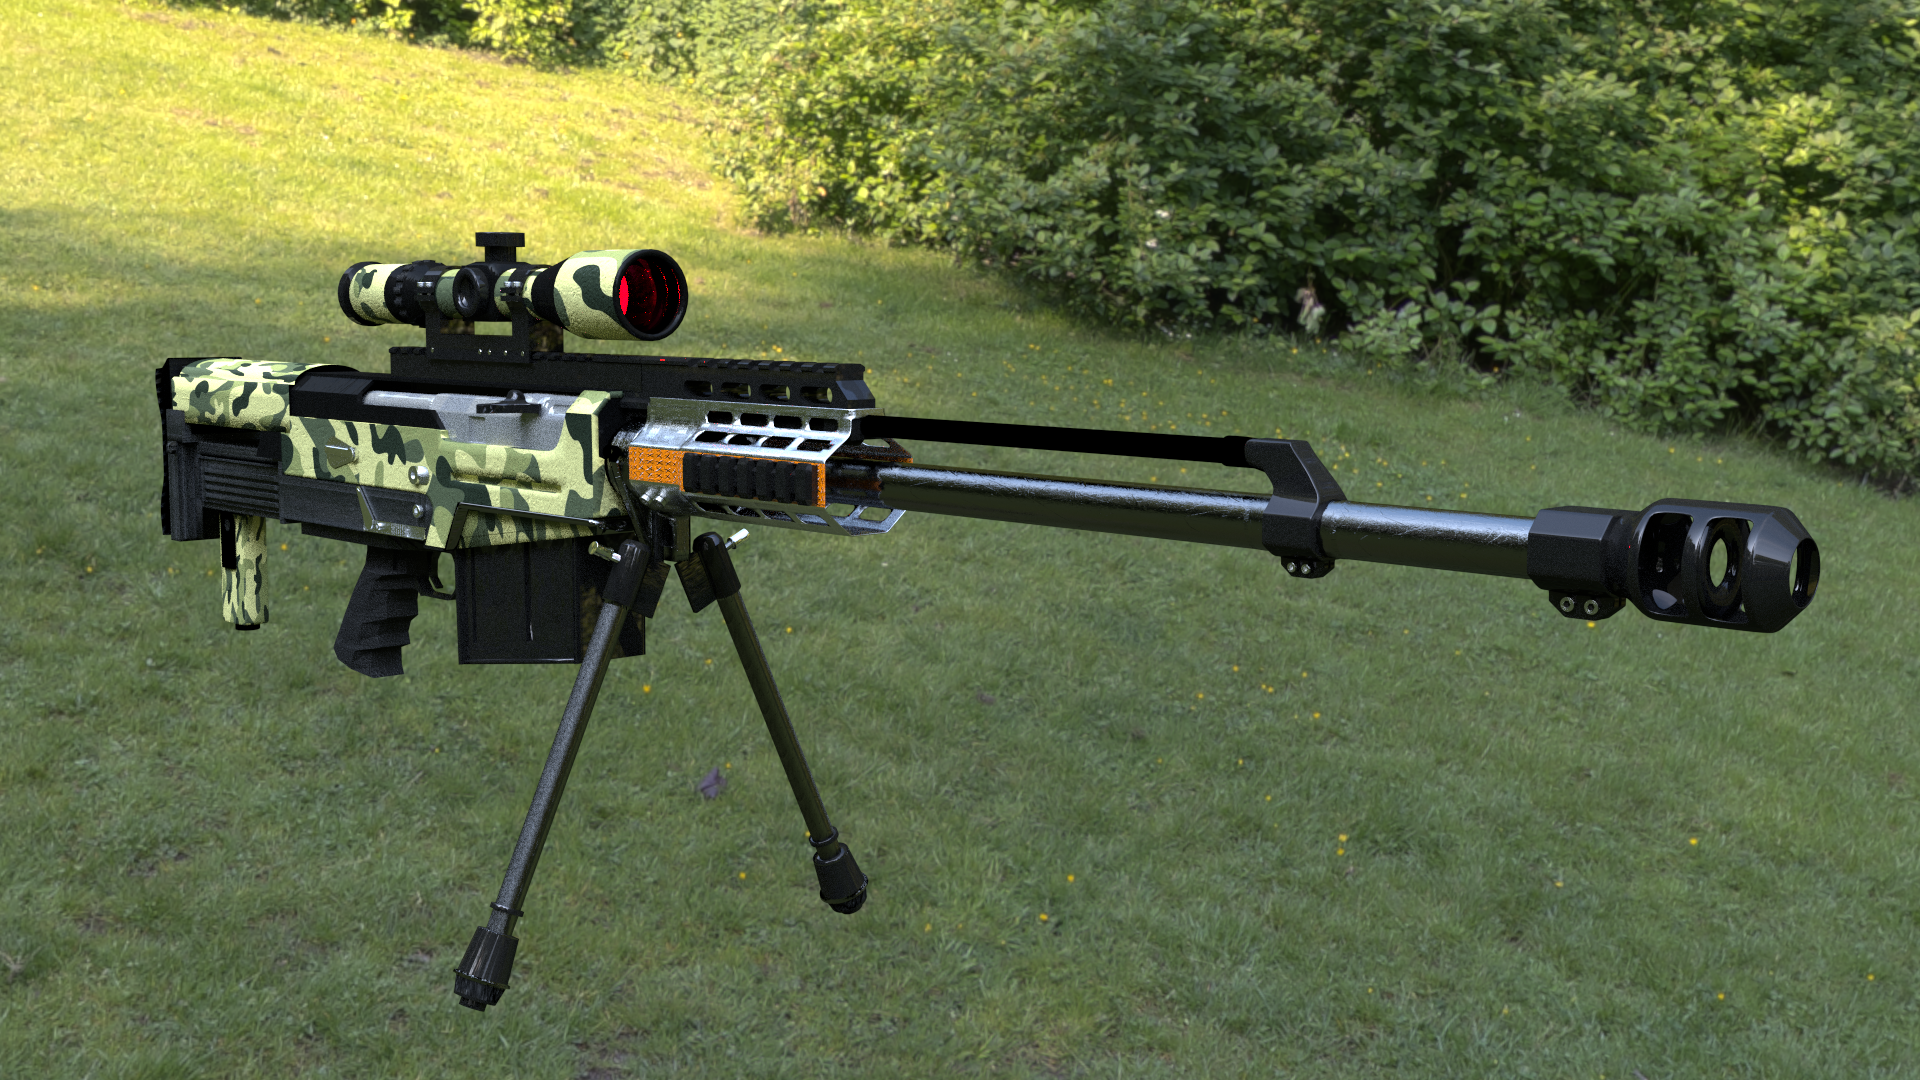 AS50 Sniper Rifle 3D Model obj 3ds fbx blend  : as50sniperrifle3dmodel3dsfbxobjblend1e100cf7 6ee6 43b8 a1d9 c7ee1c7c705e from cgtrader.com size 1920 x 1080 png 3061kB